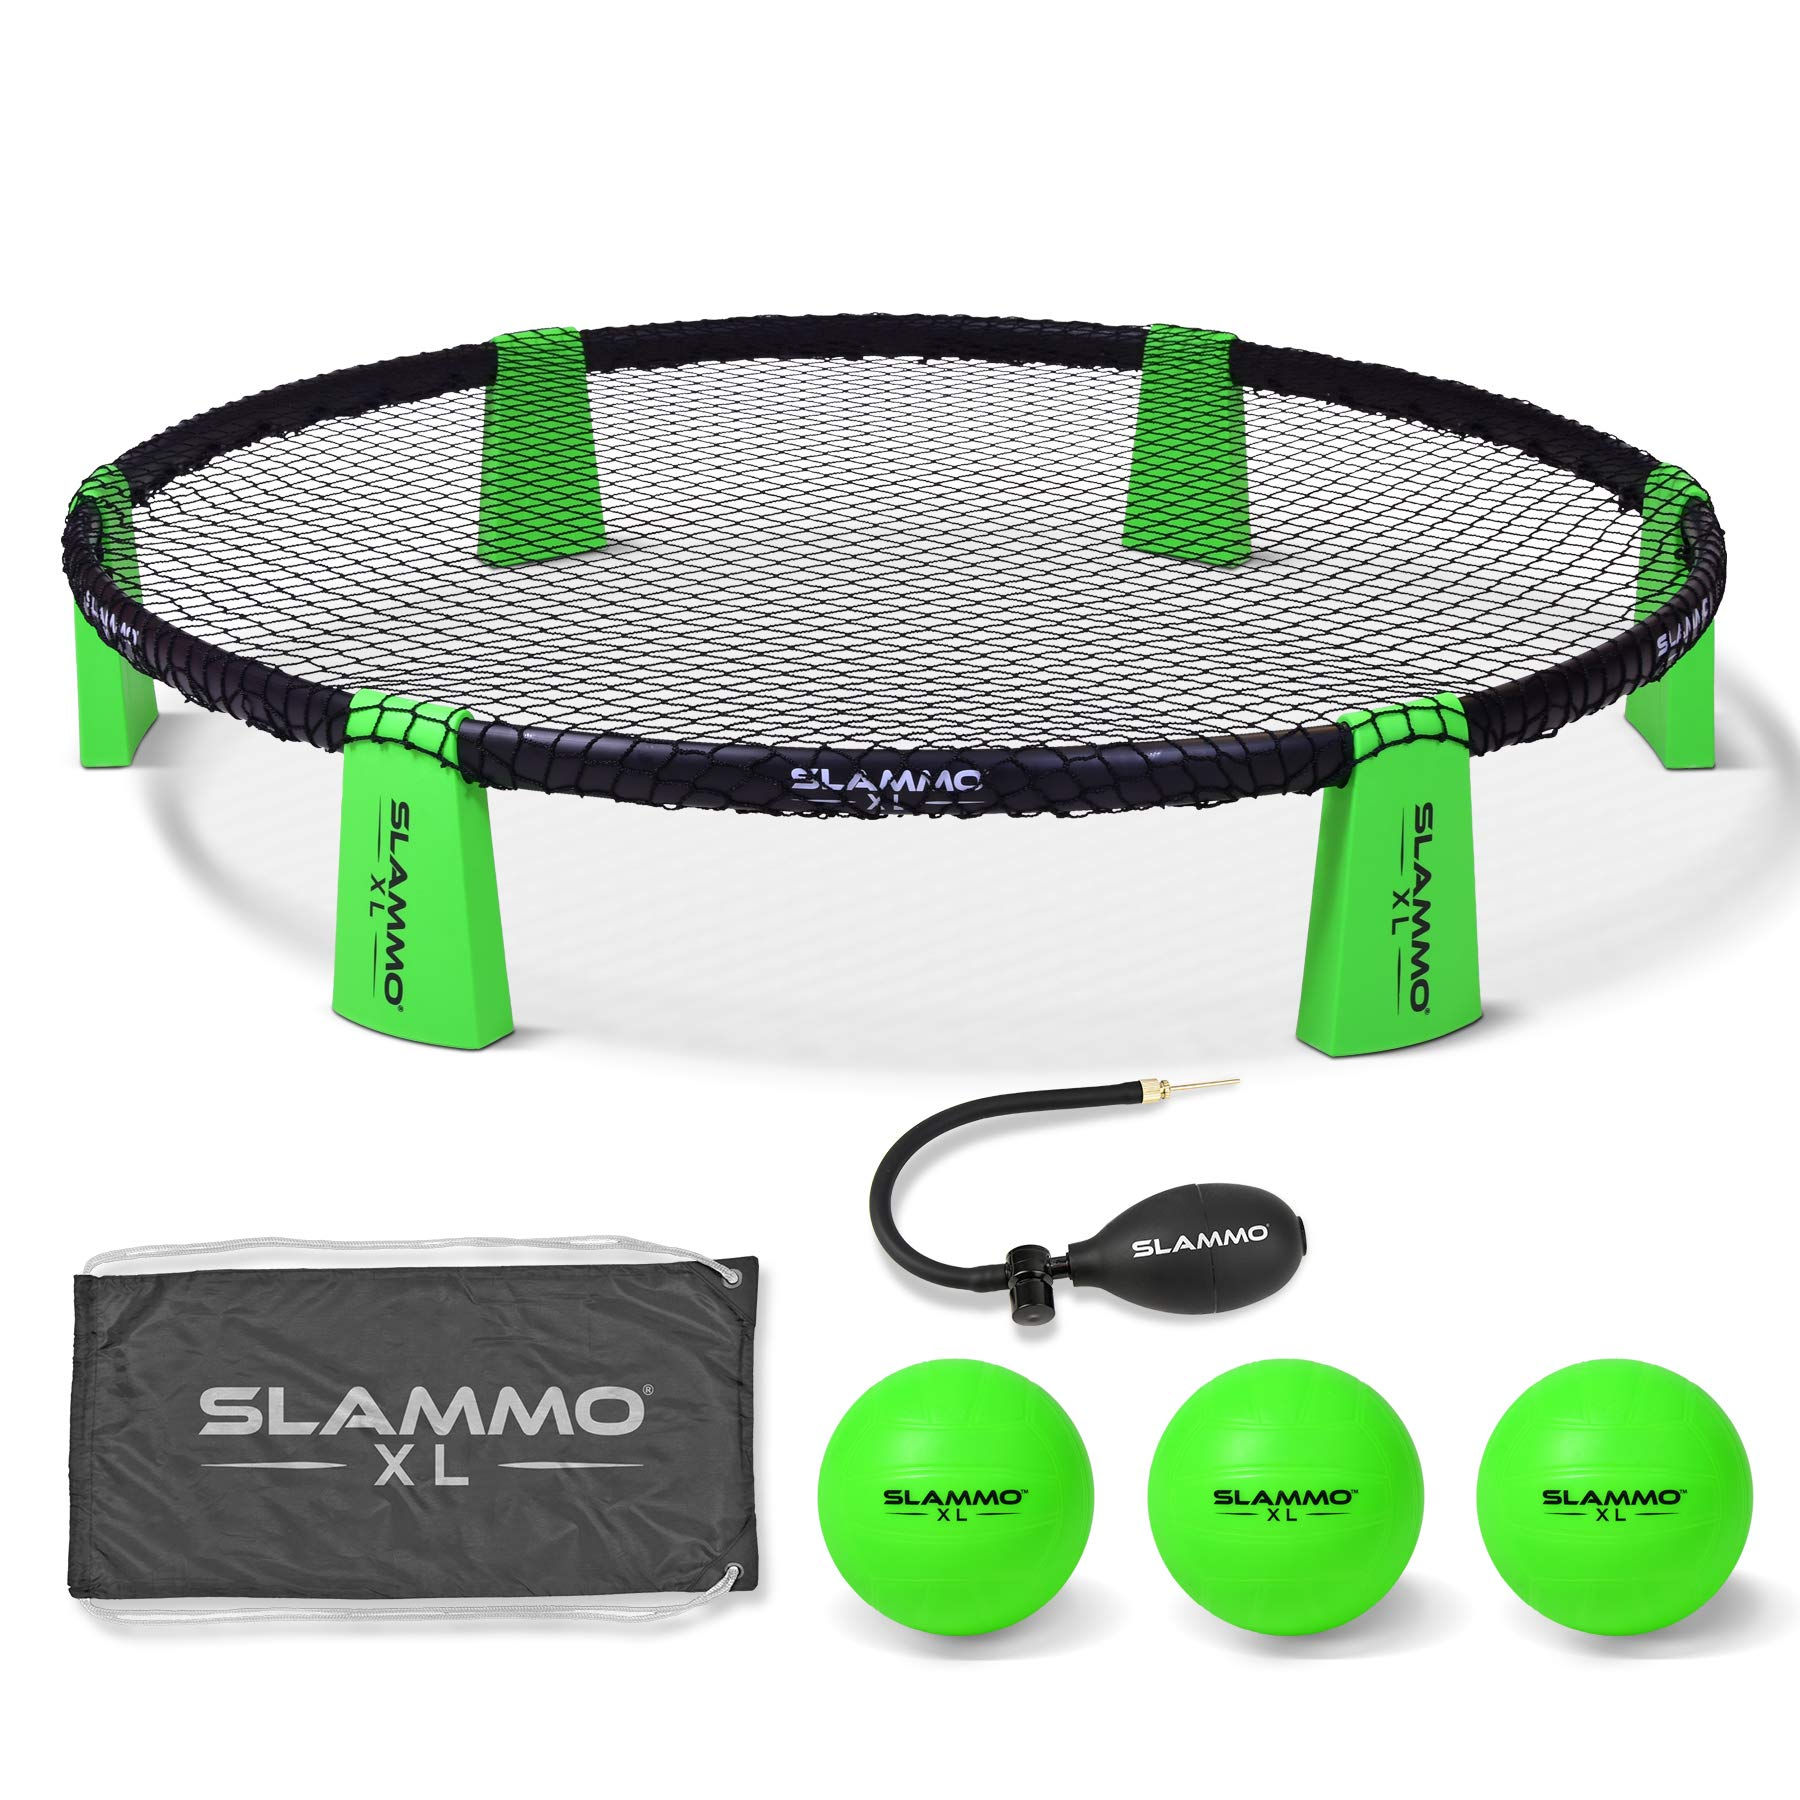 GoSports Slammo XL Game Set | Huge 48'' Net | Great for Beginners, Younger Players or Group Play